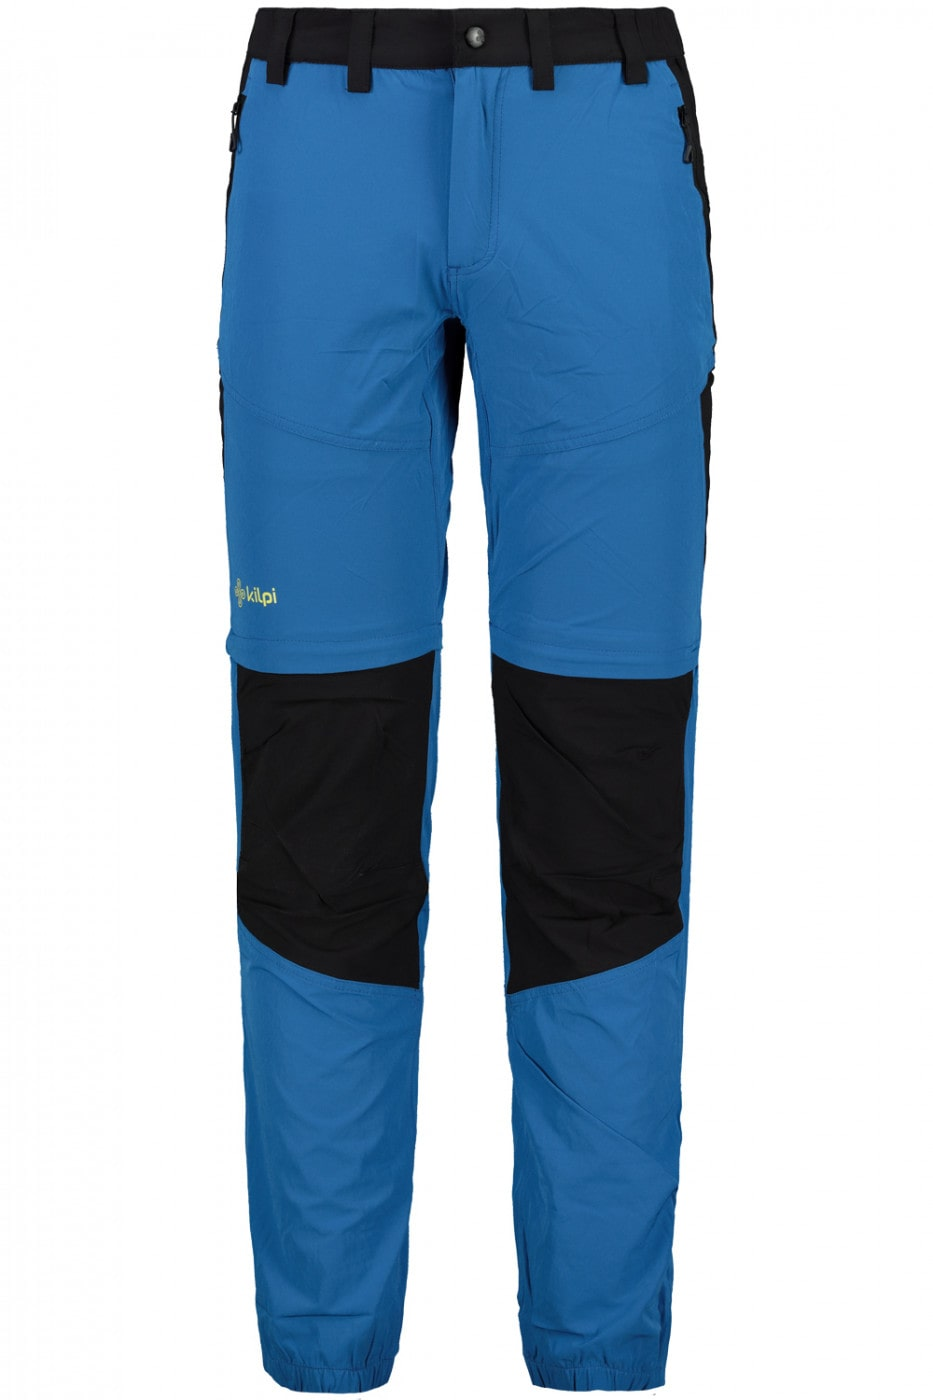 Men's outdoor pants Kilpi HOSIO-M